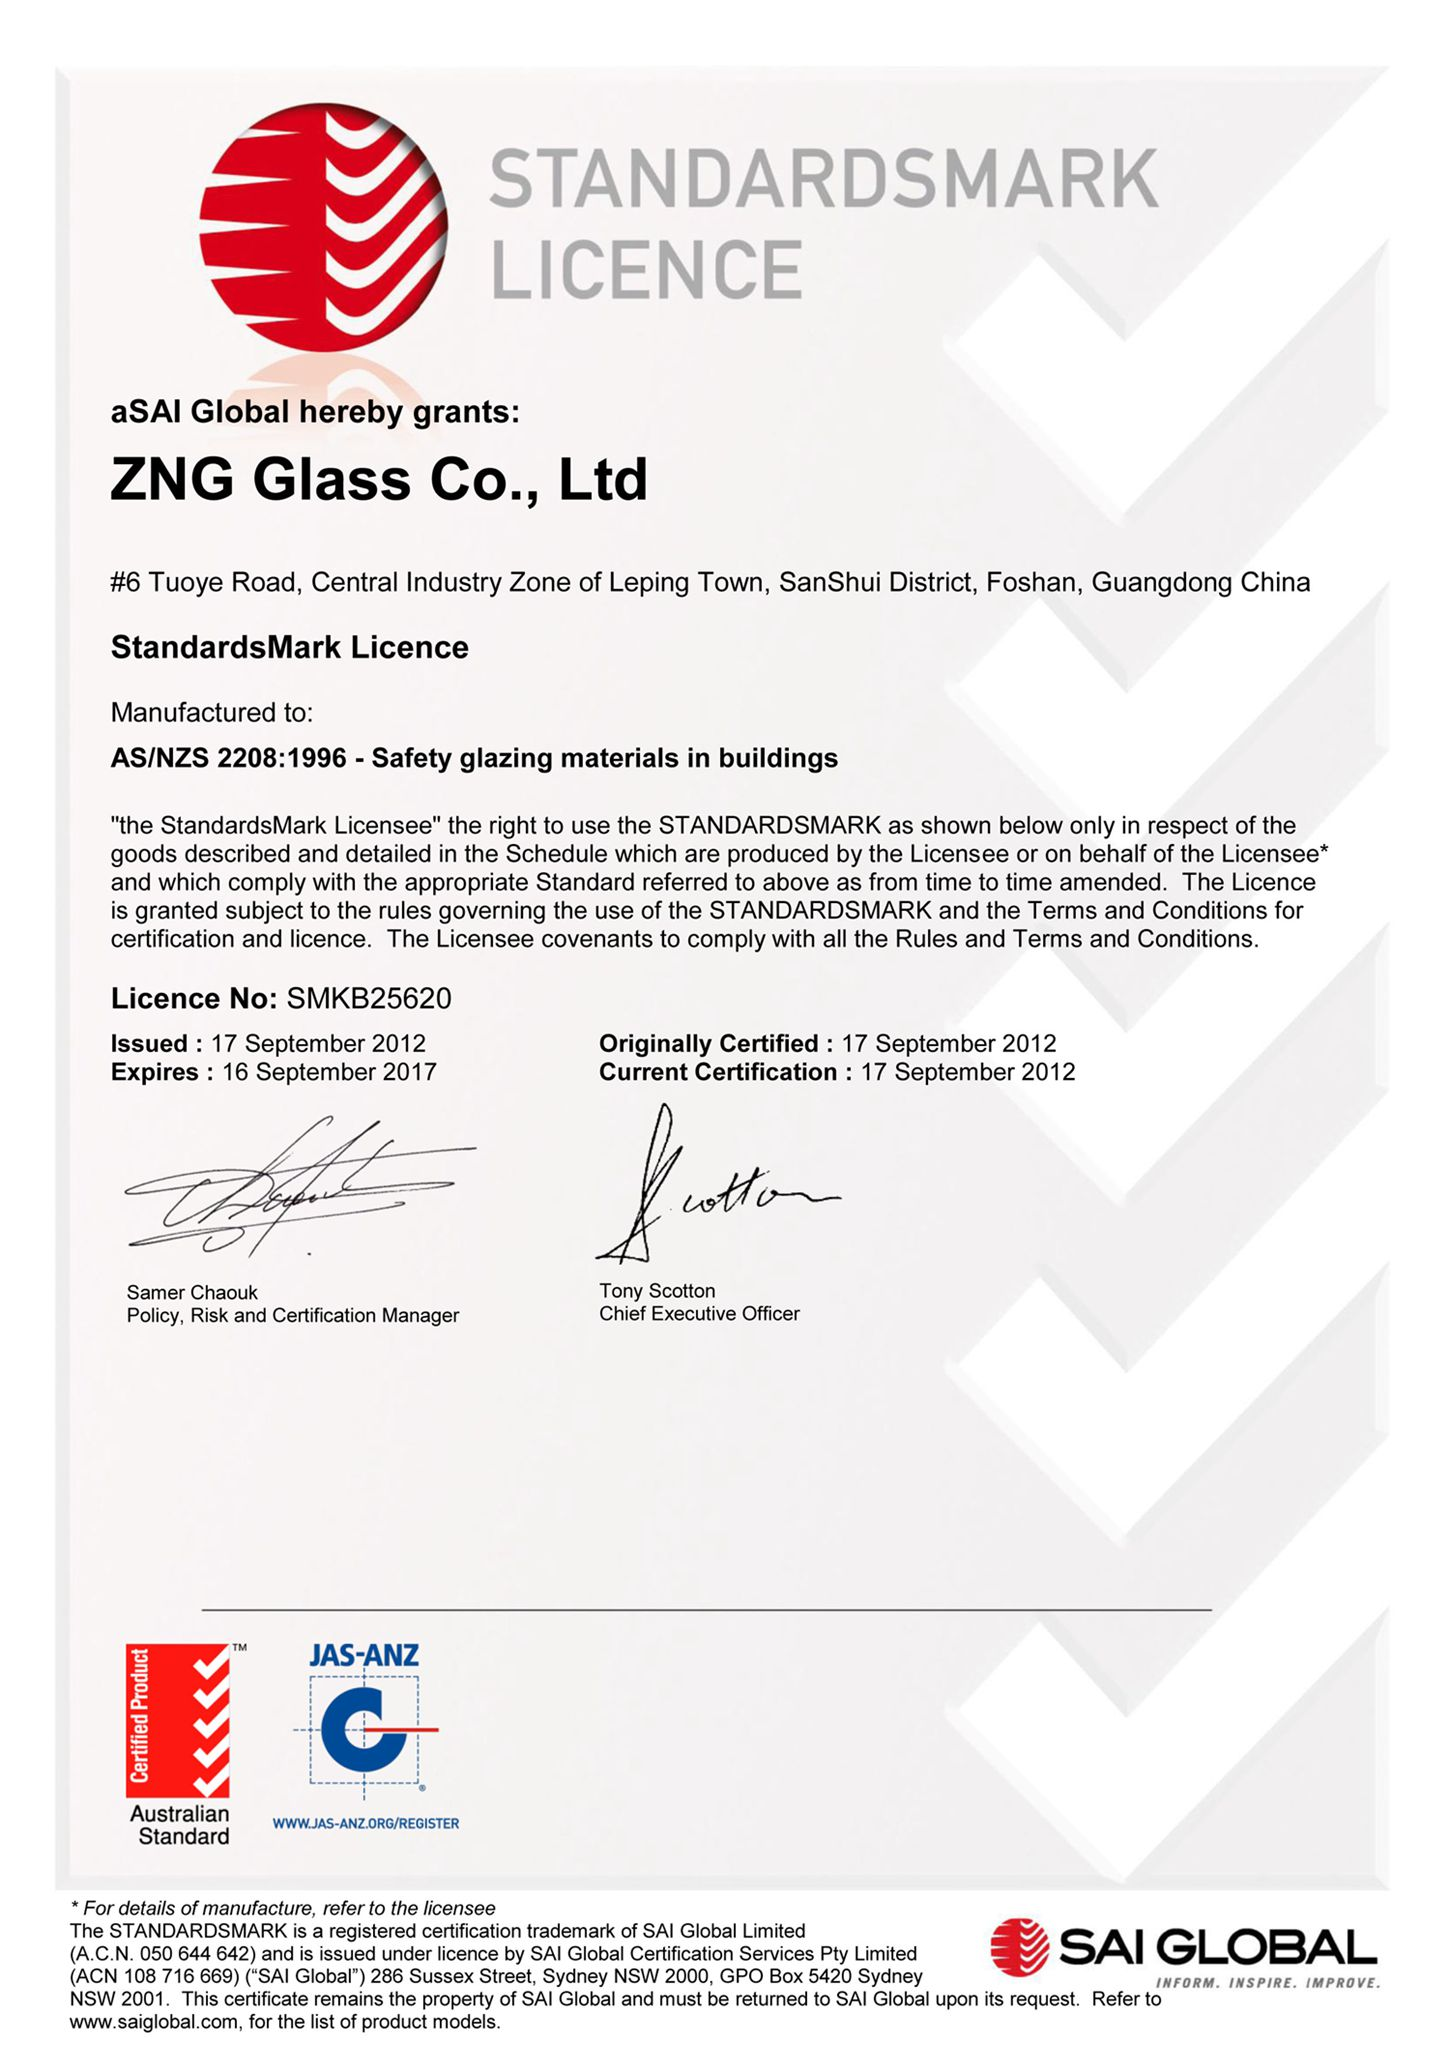 AS/NZS2208:1996-safety glazing materials in buildings for Australia Market